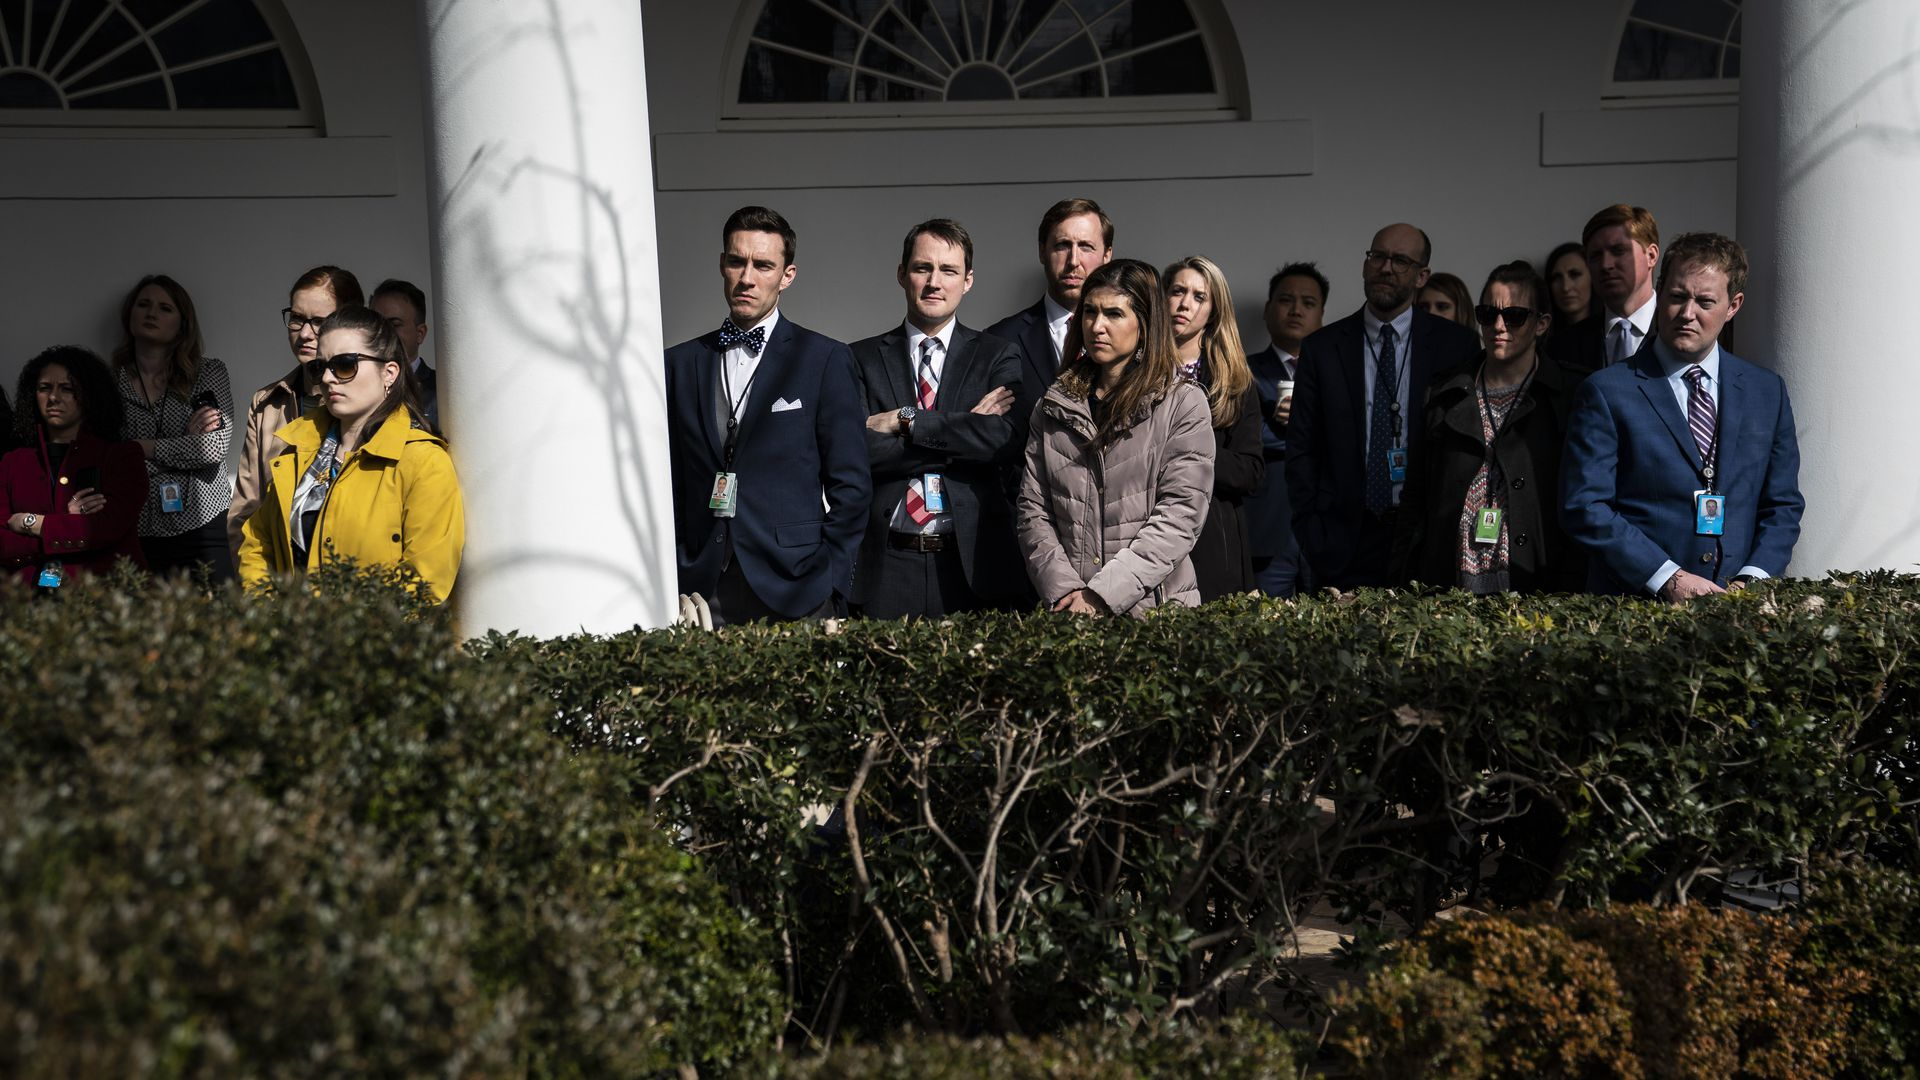 White House staff members watch as the president delivers a speech in the Rose Garden.